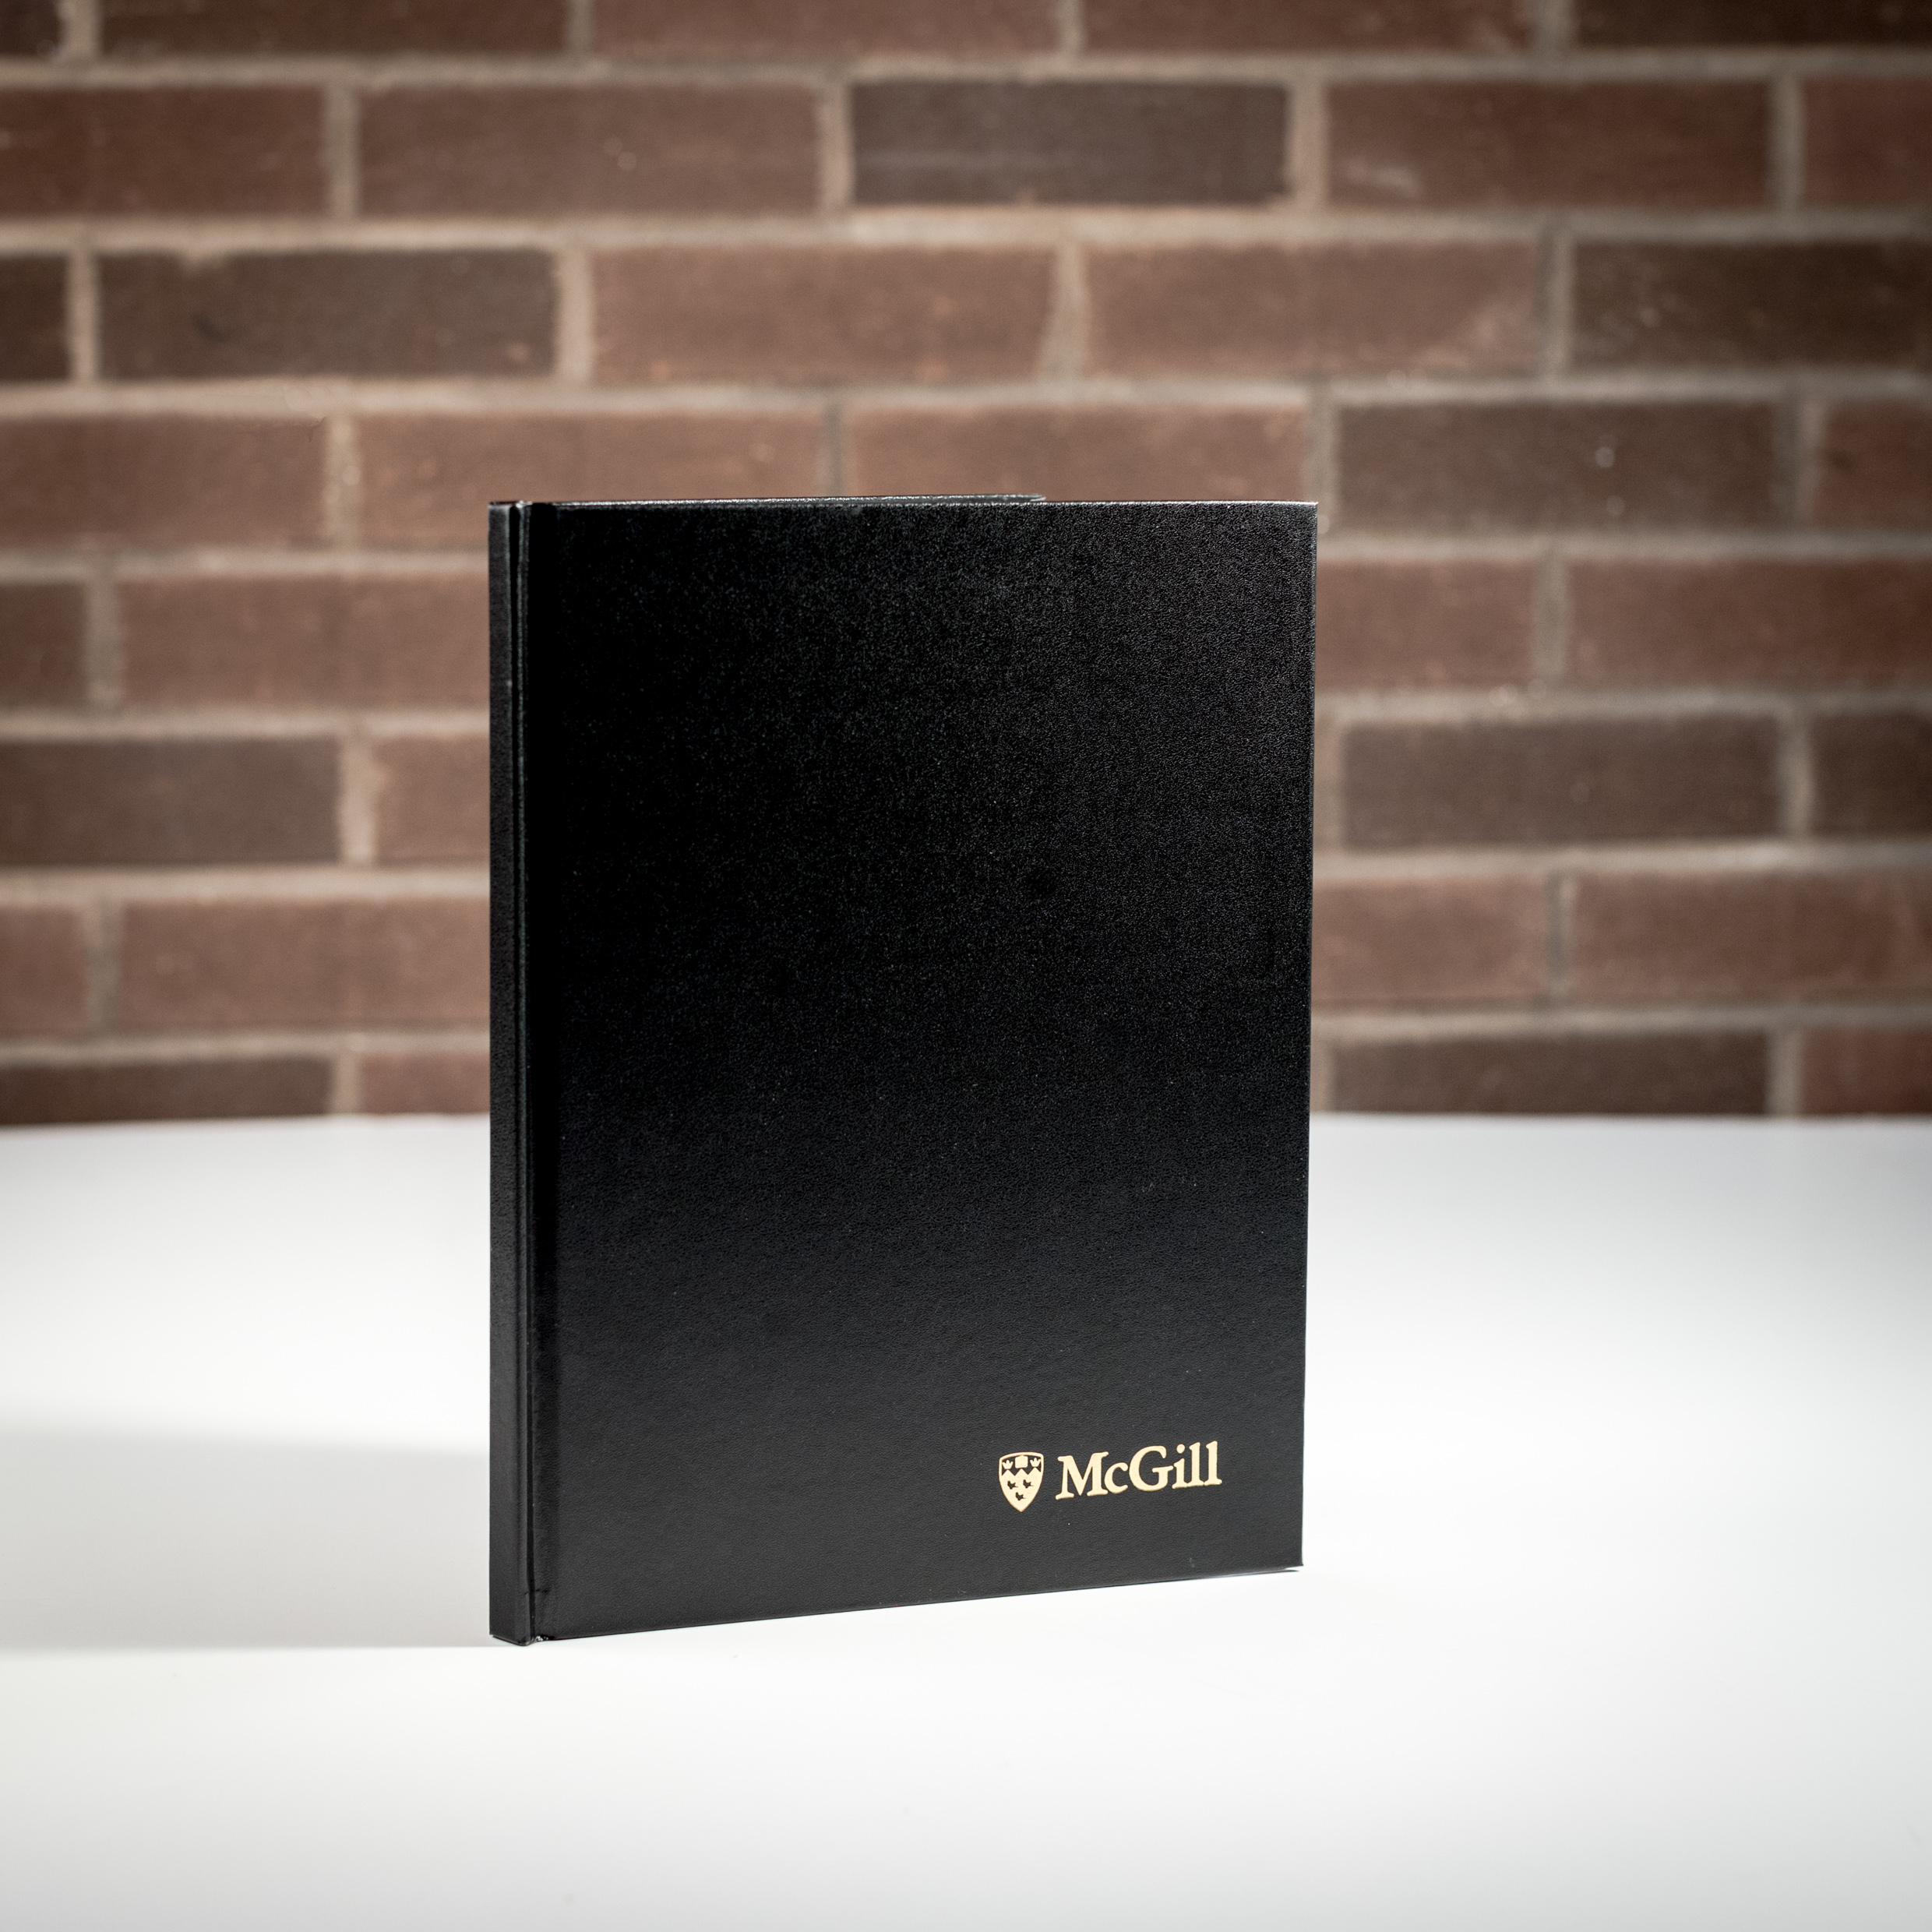 McGill Hardcover Executive Journal